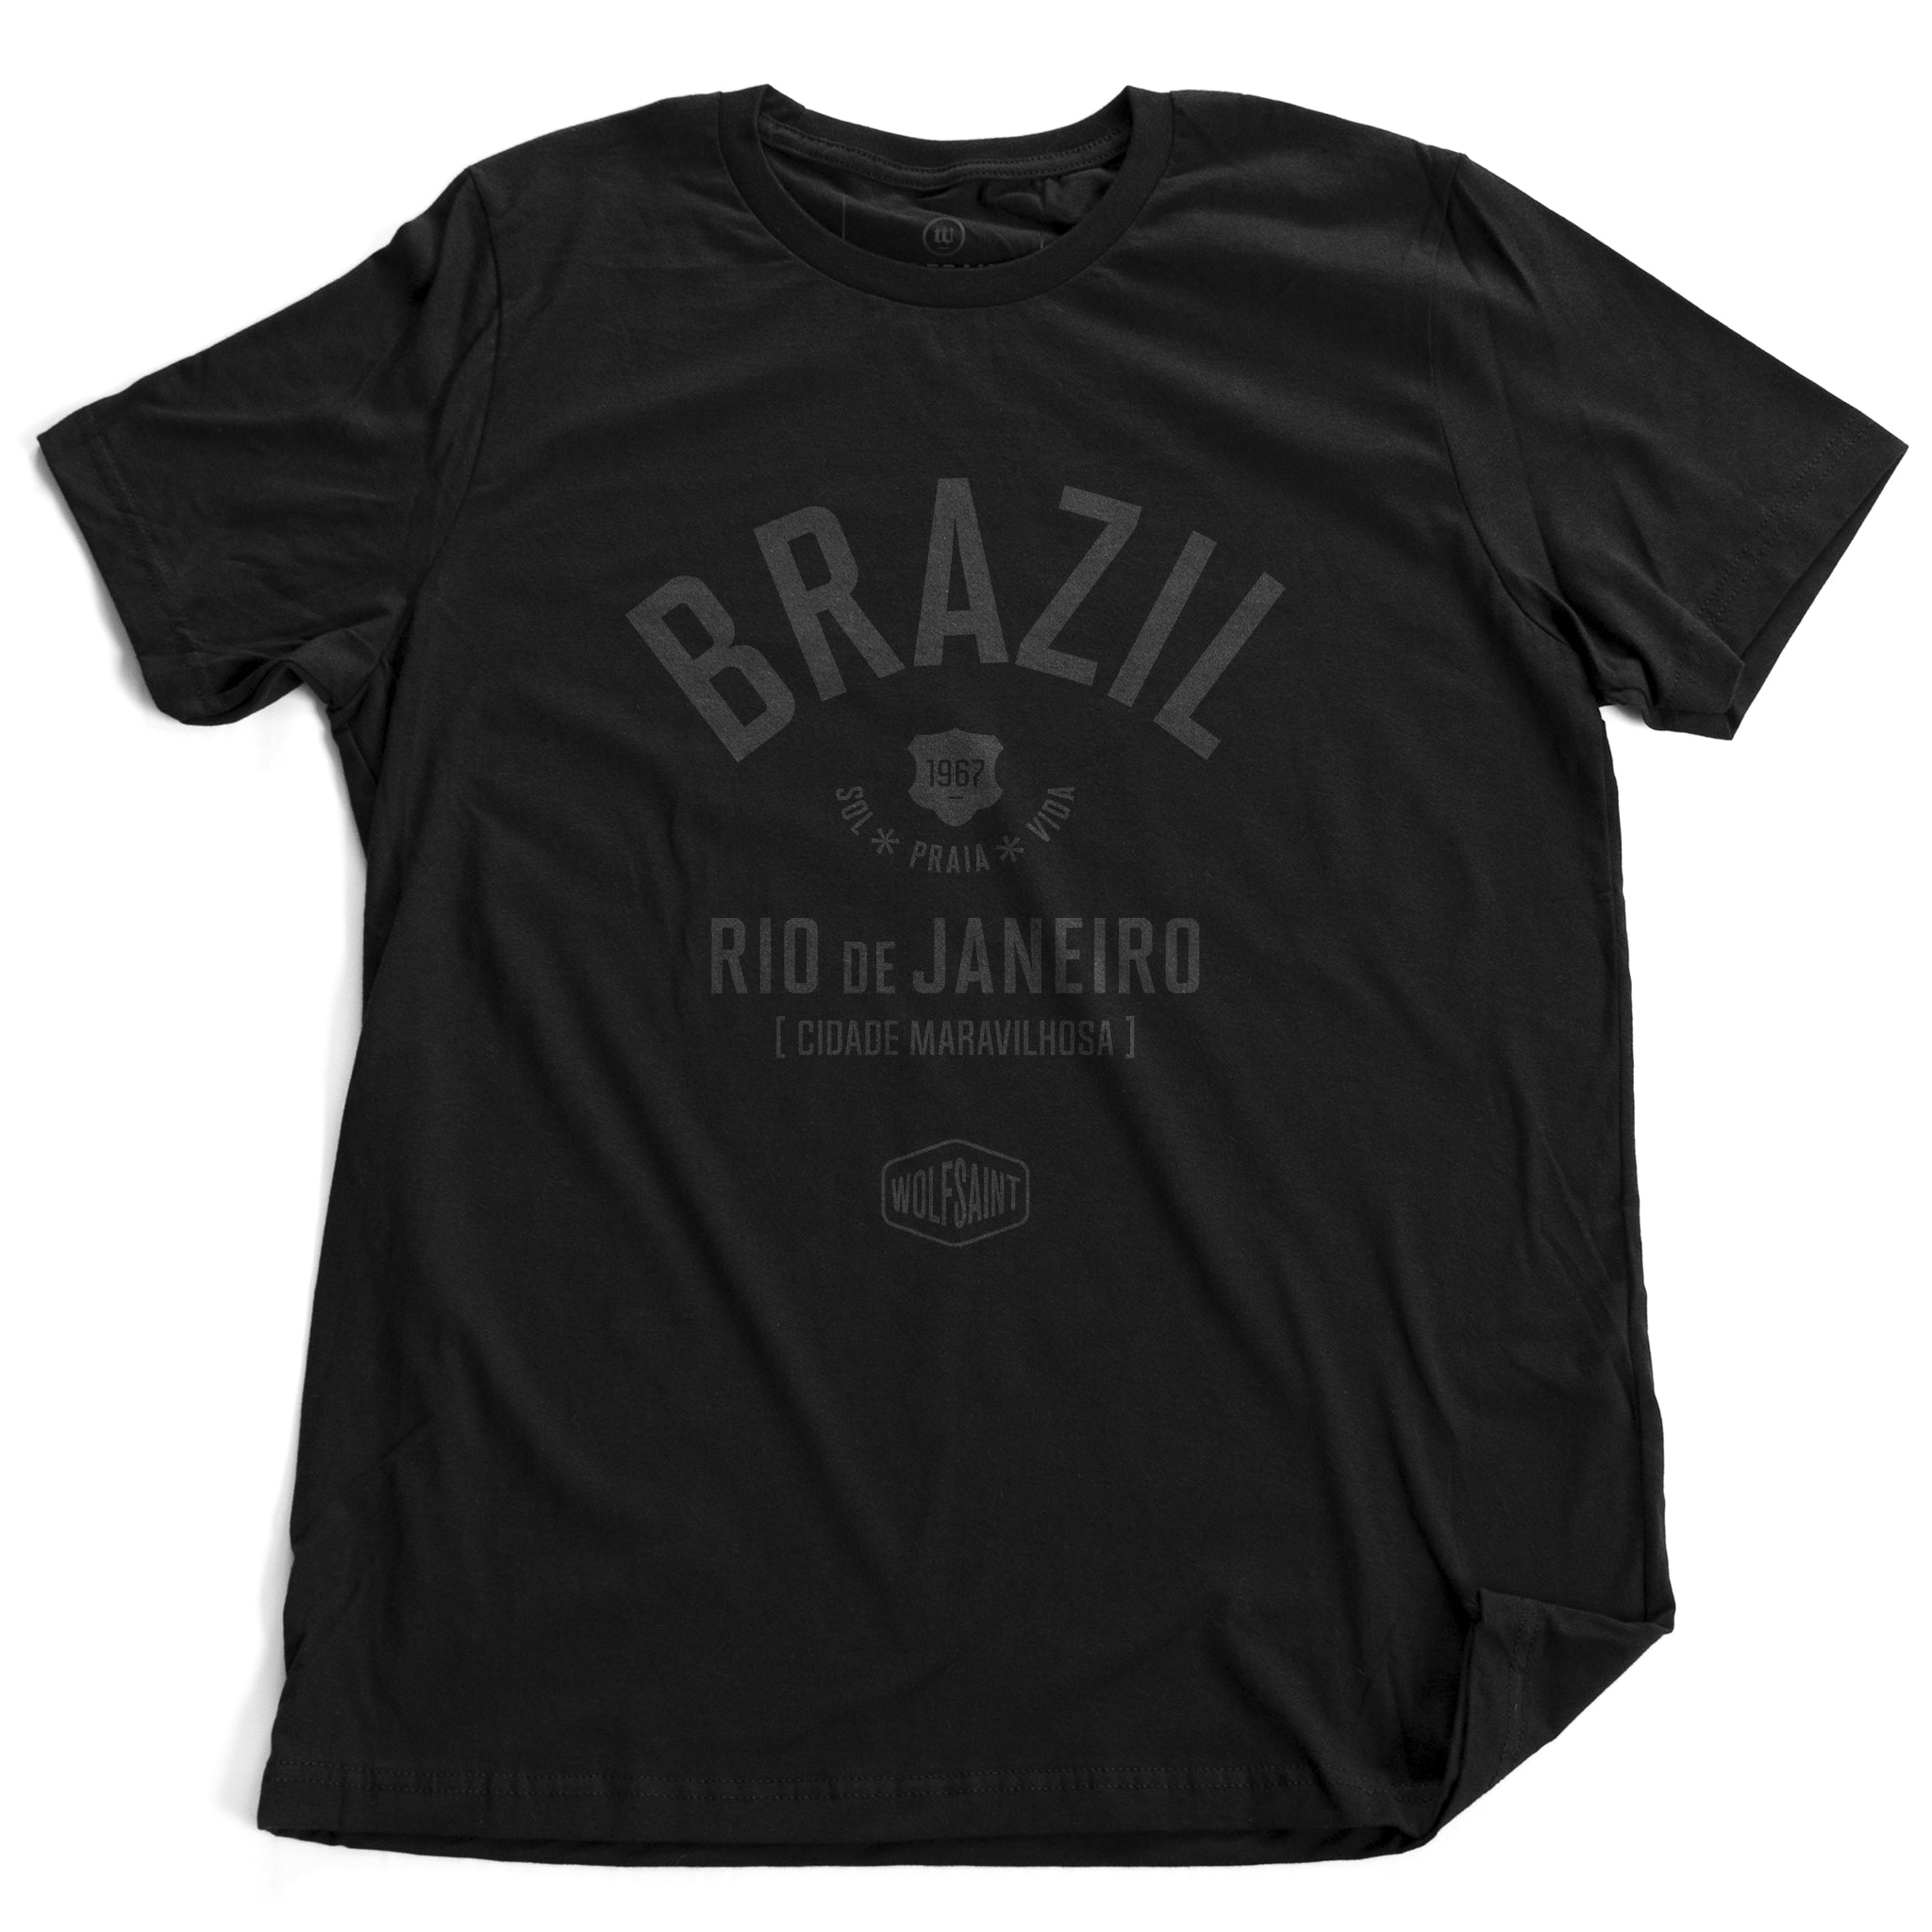 "Black retro t-shirt with classic typography and graphic of BRAZIL (Brasil) and Rio de Janeiro, ""Cidade Maravilhosa"" (The Marvelous City) by brand Wolfsaint, with the date 1967, and sun, beach, life in Portuguese (Sol Praia Vida). From wolfsaint.net"